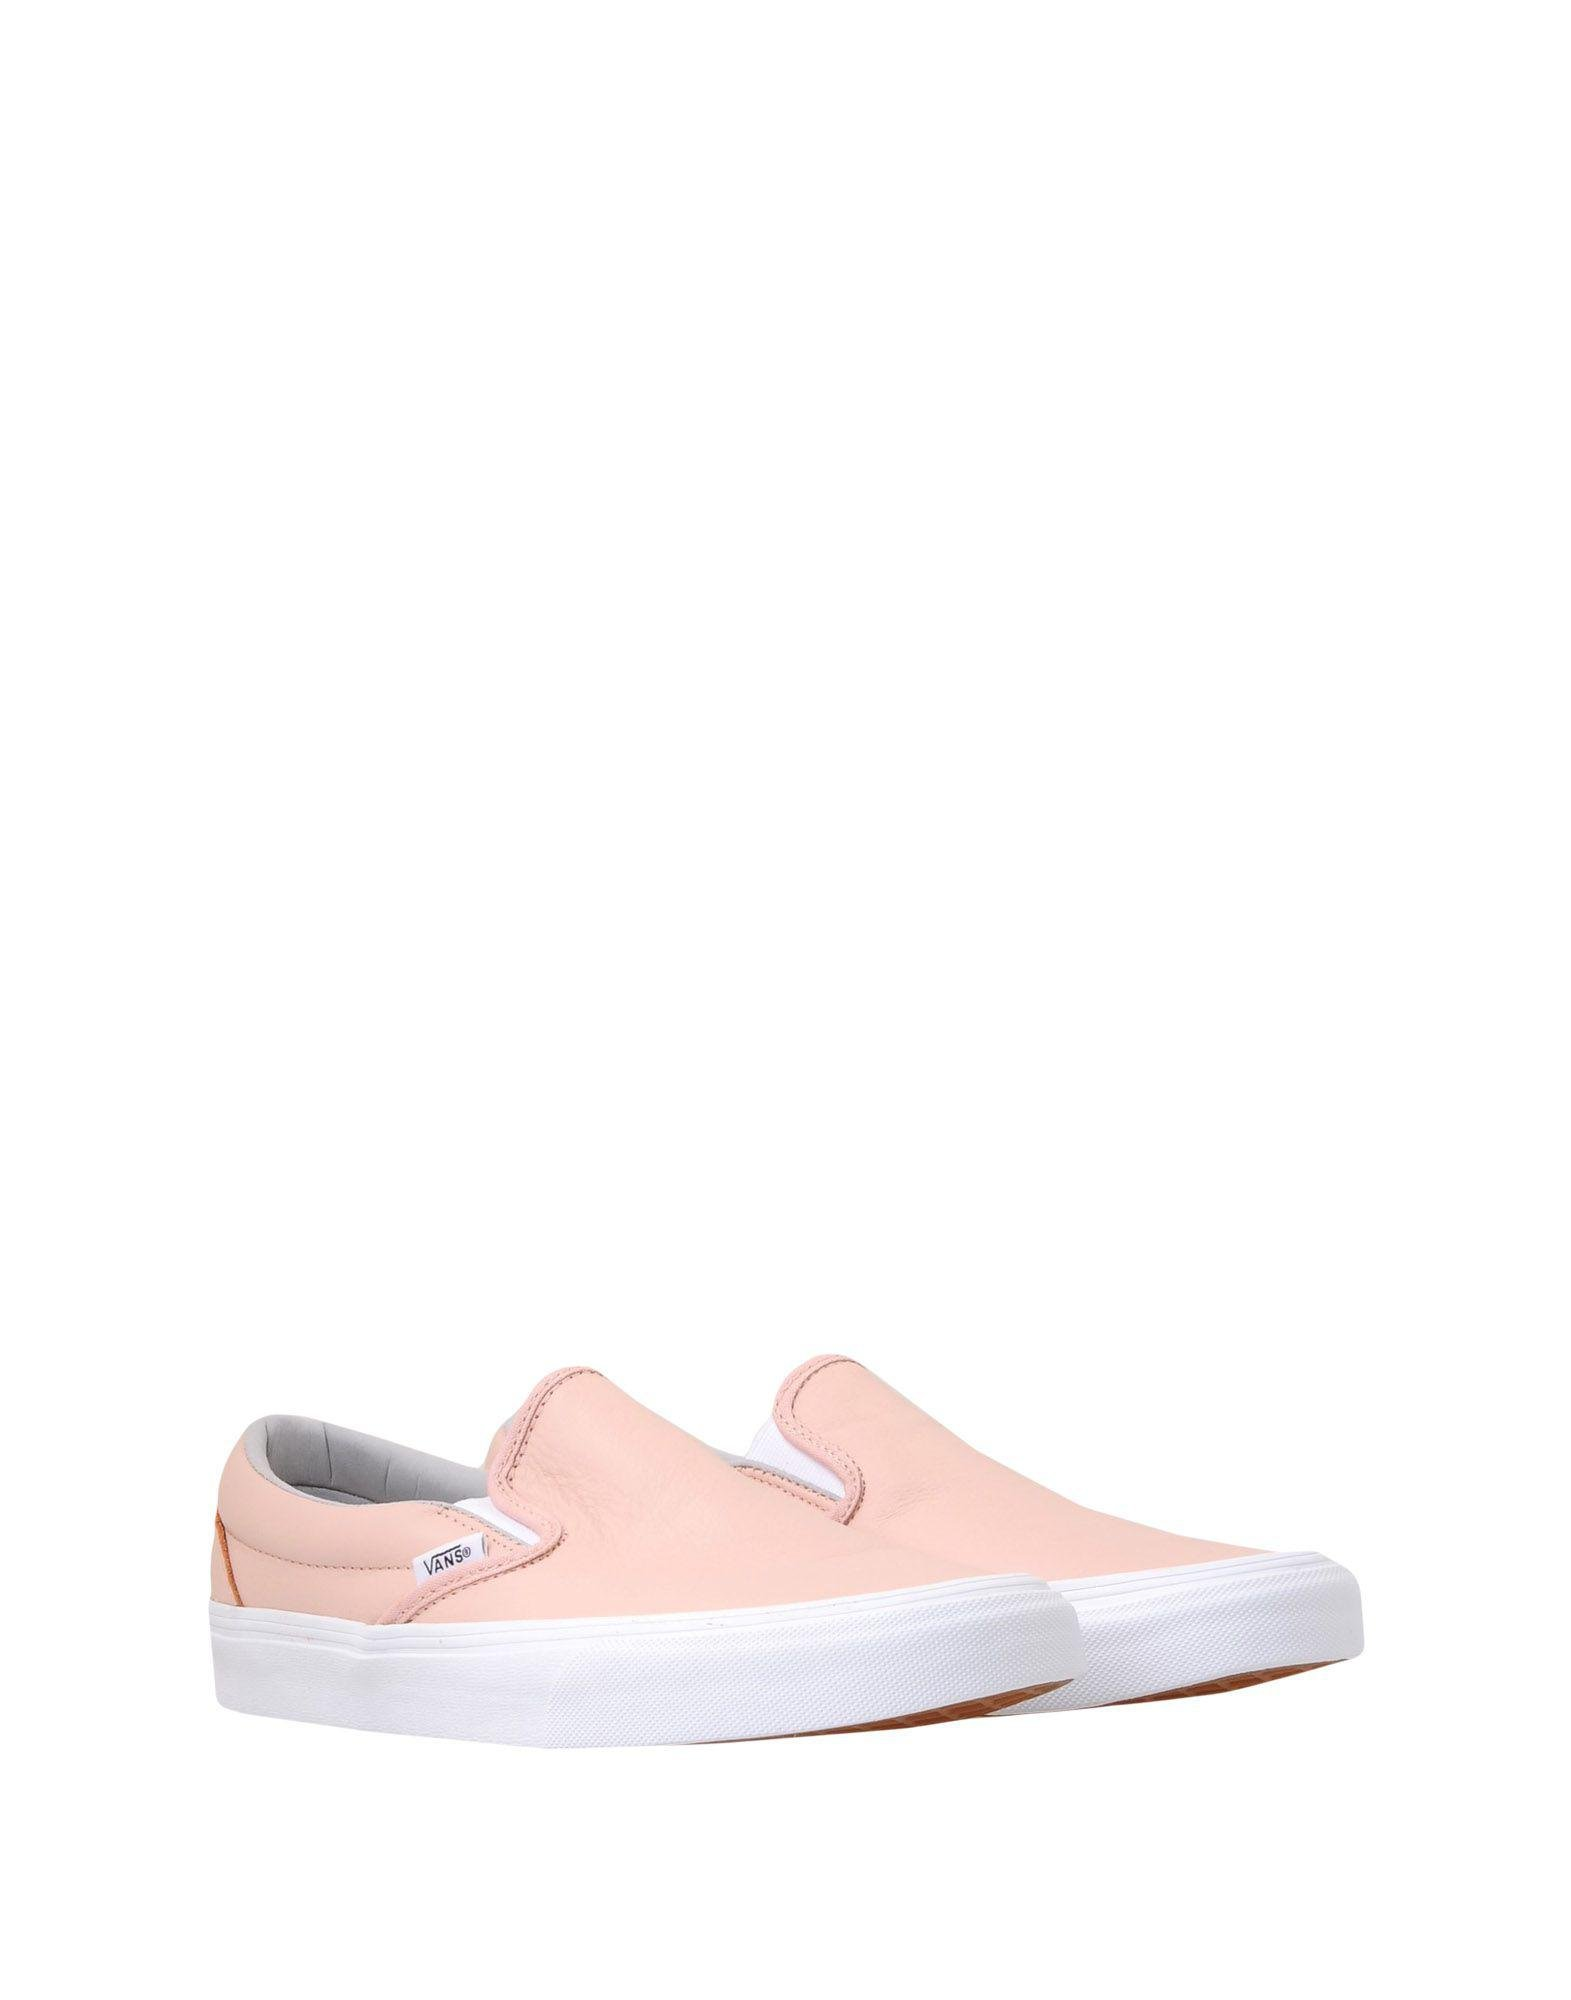 Vans Leather Low-tops & Sneakers in Pale Pink (Pink)